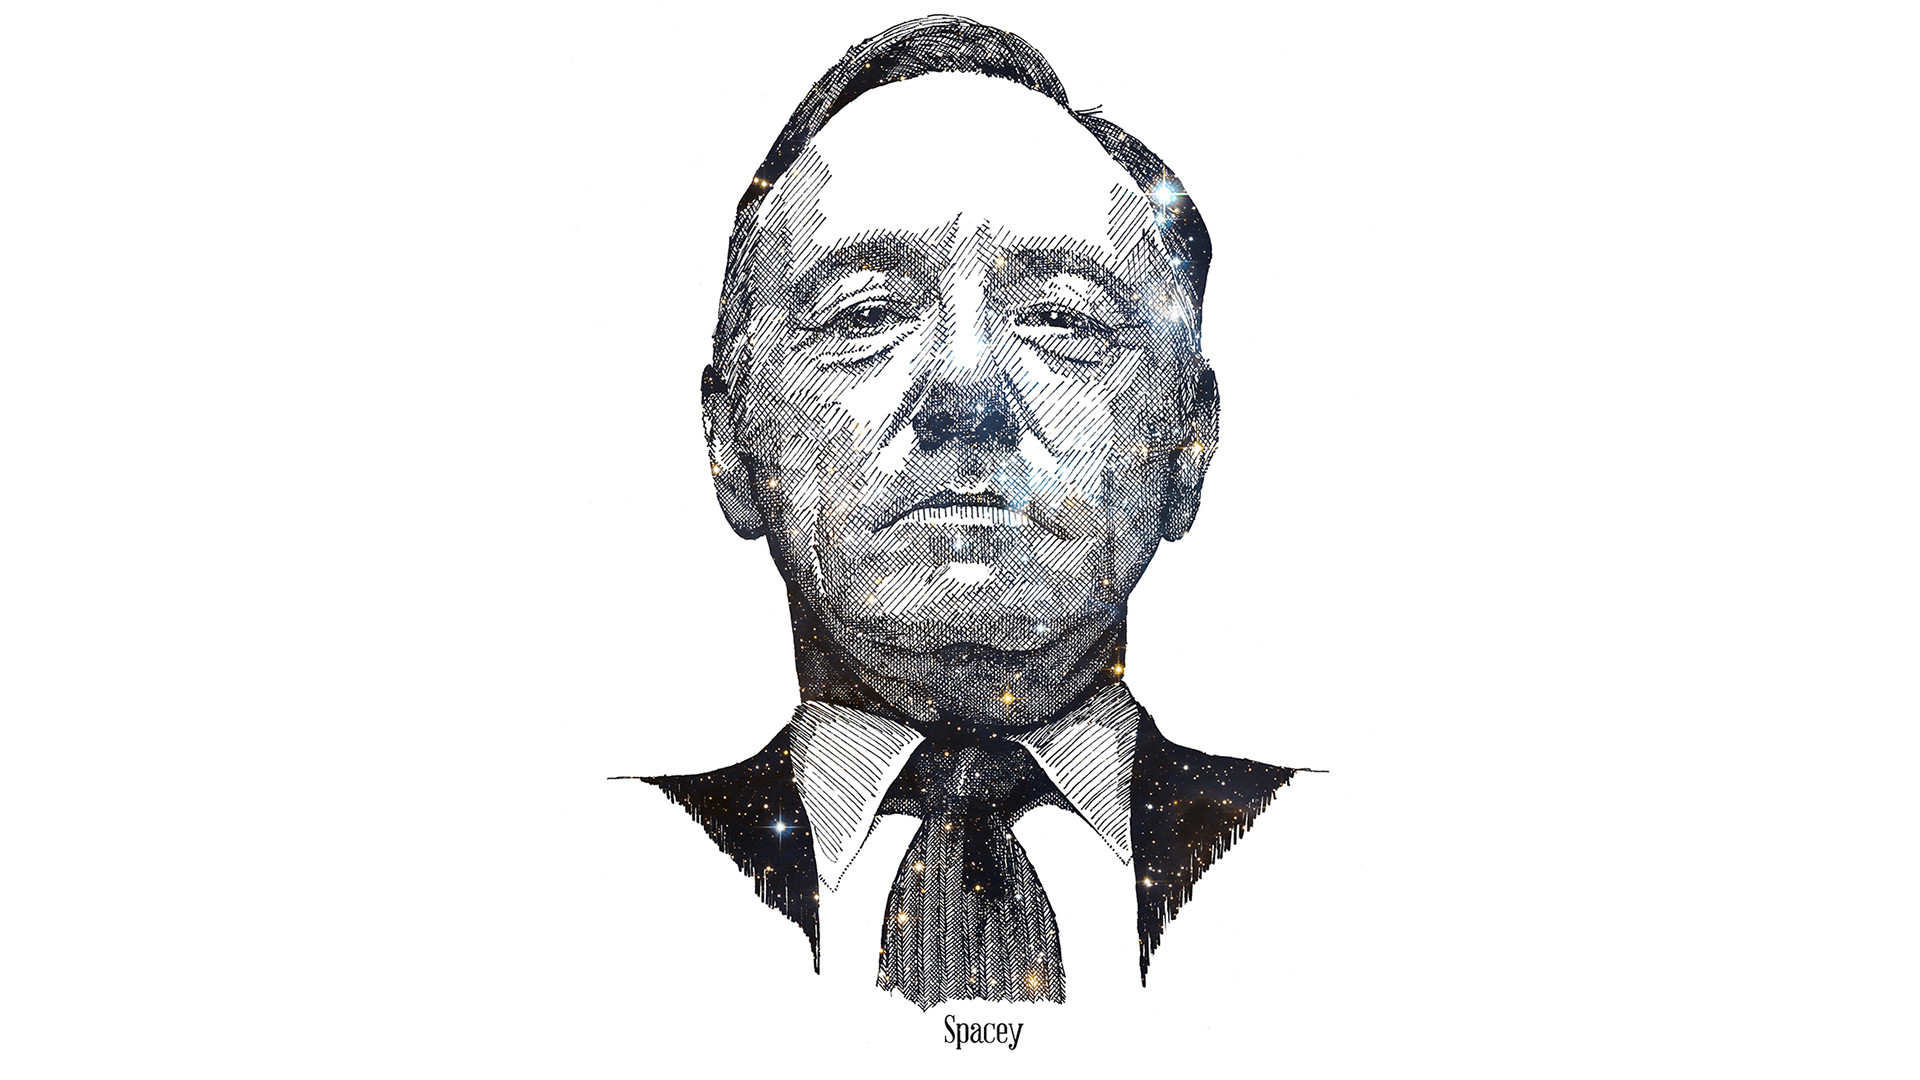 1920x1080 - Kevin Spacey Wallpapers 14